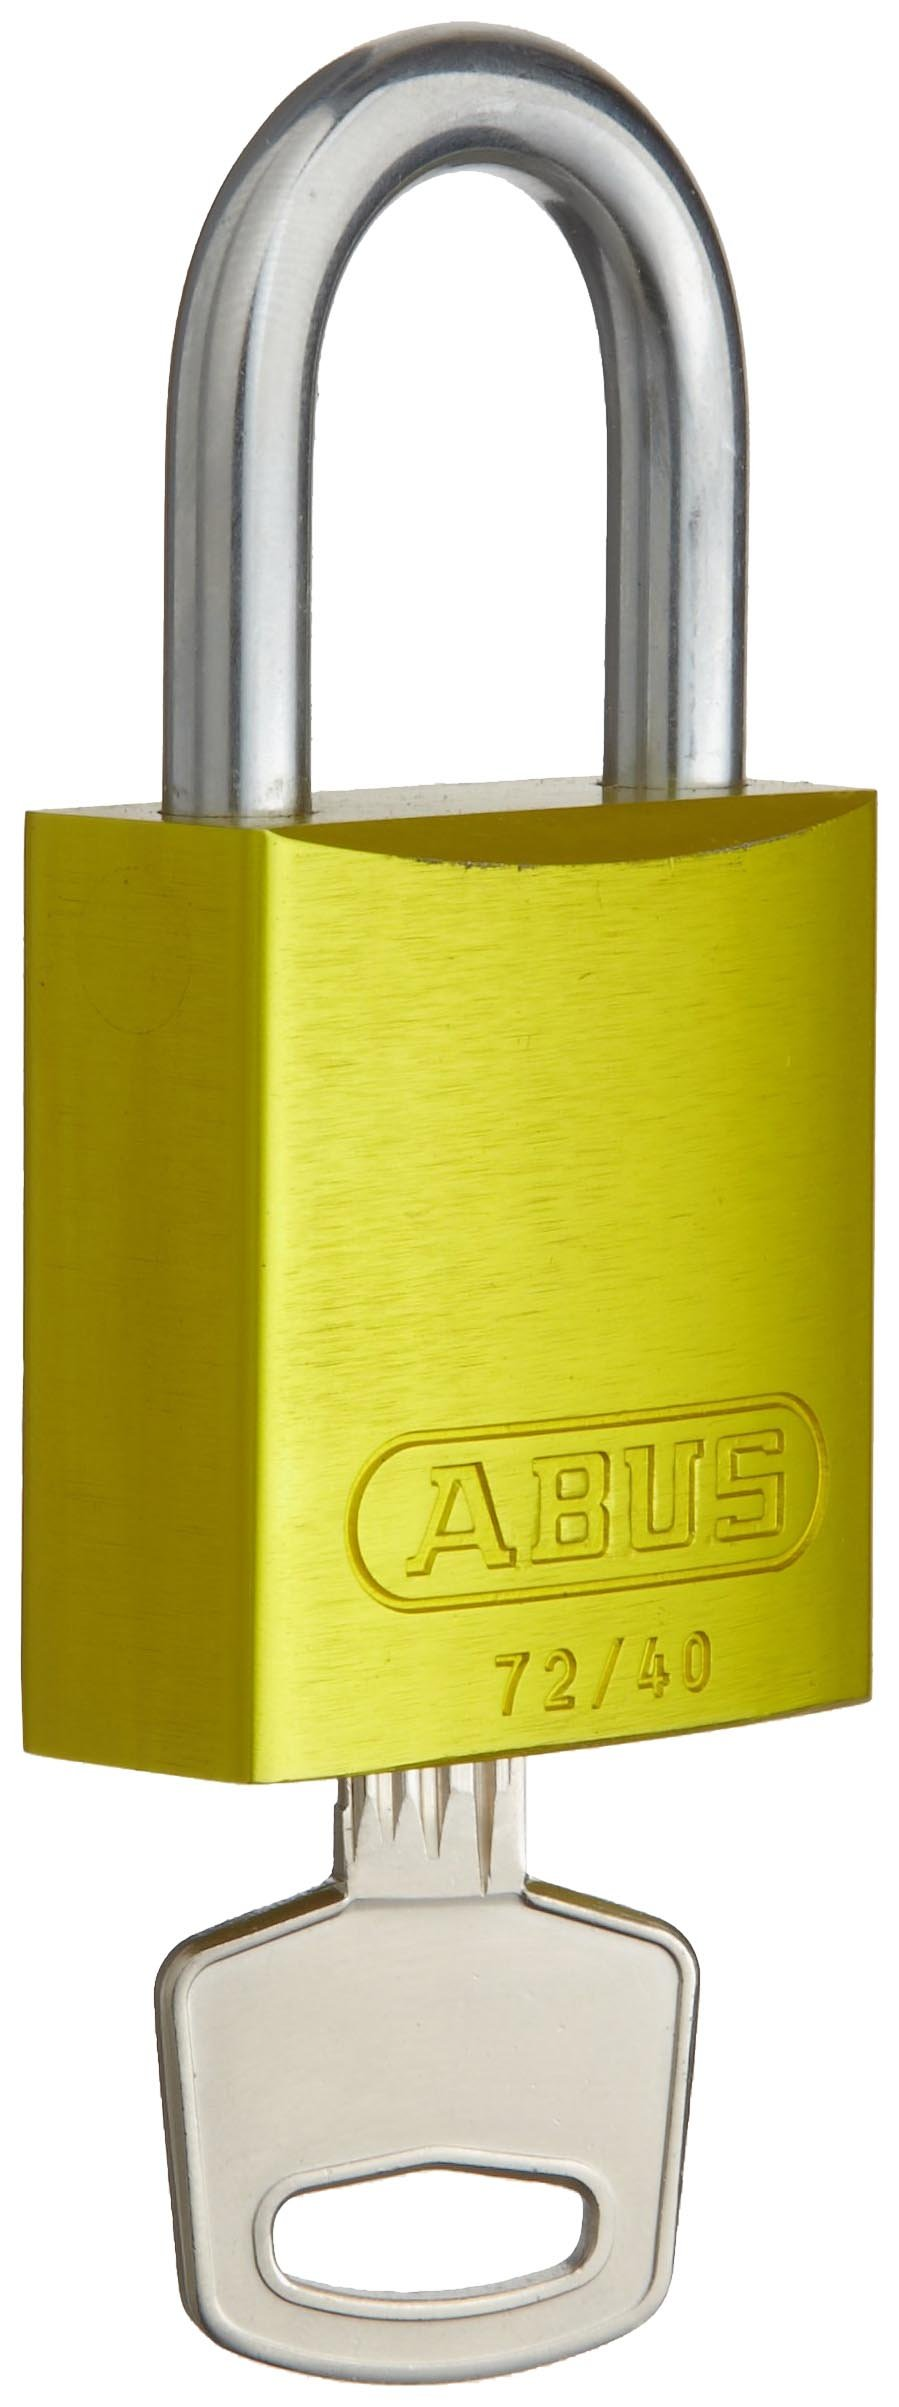 Brady Aluminum Lockout/Tagout Padlock, Keyed Different, 1-3/5'' Body Length, 1'' Shackle Clearance, Yellow (Pack of 1)